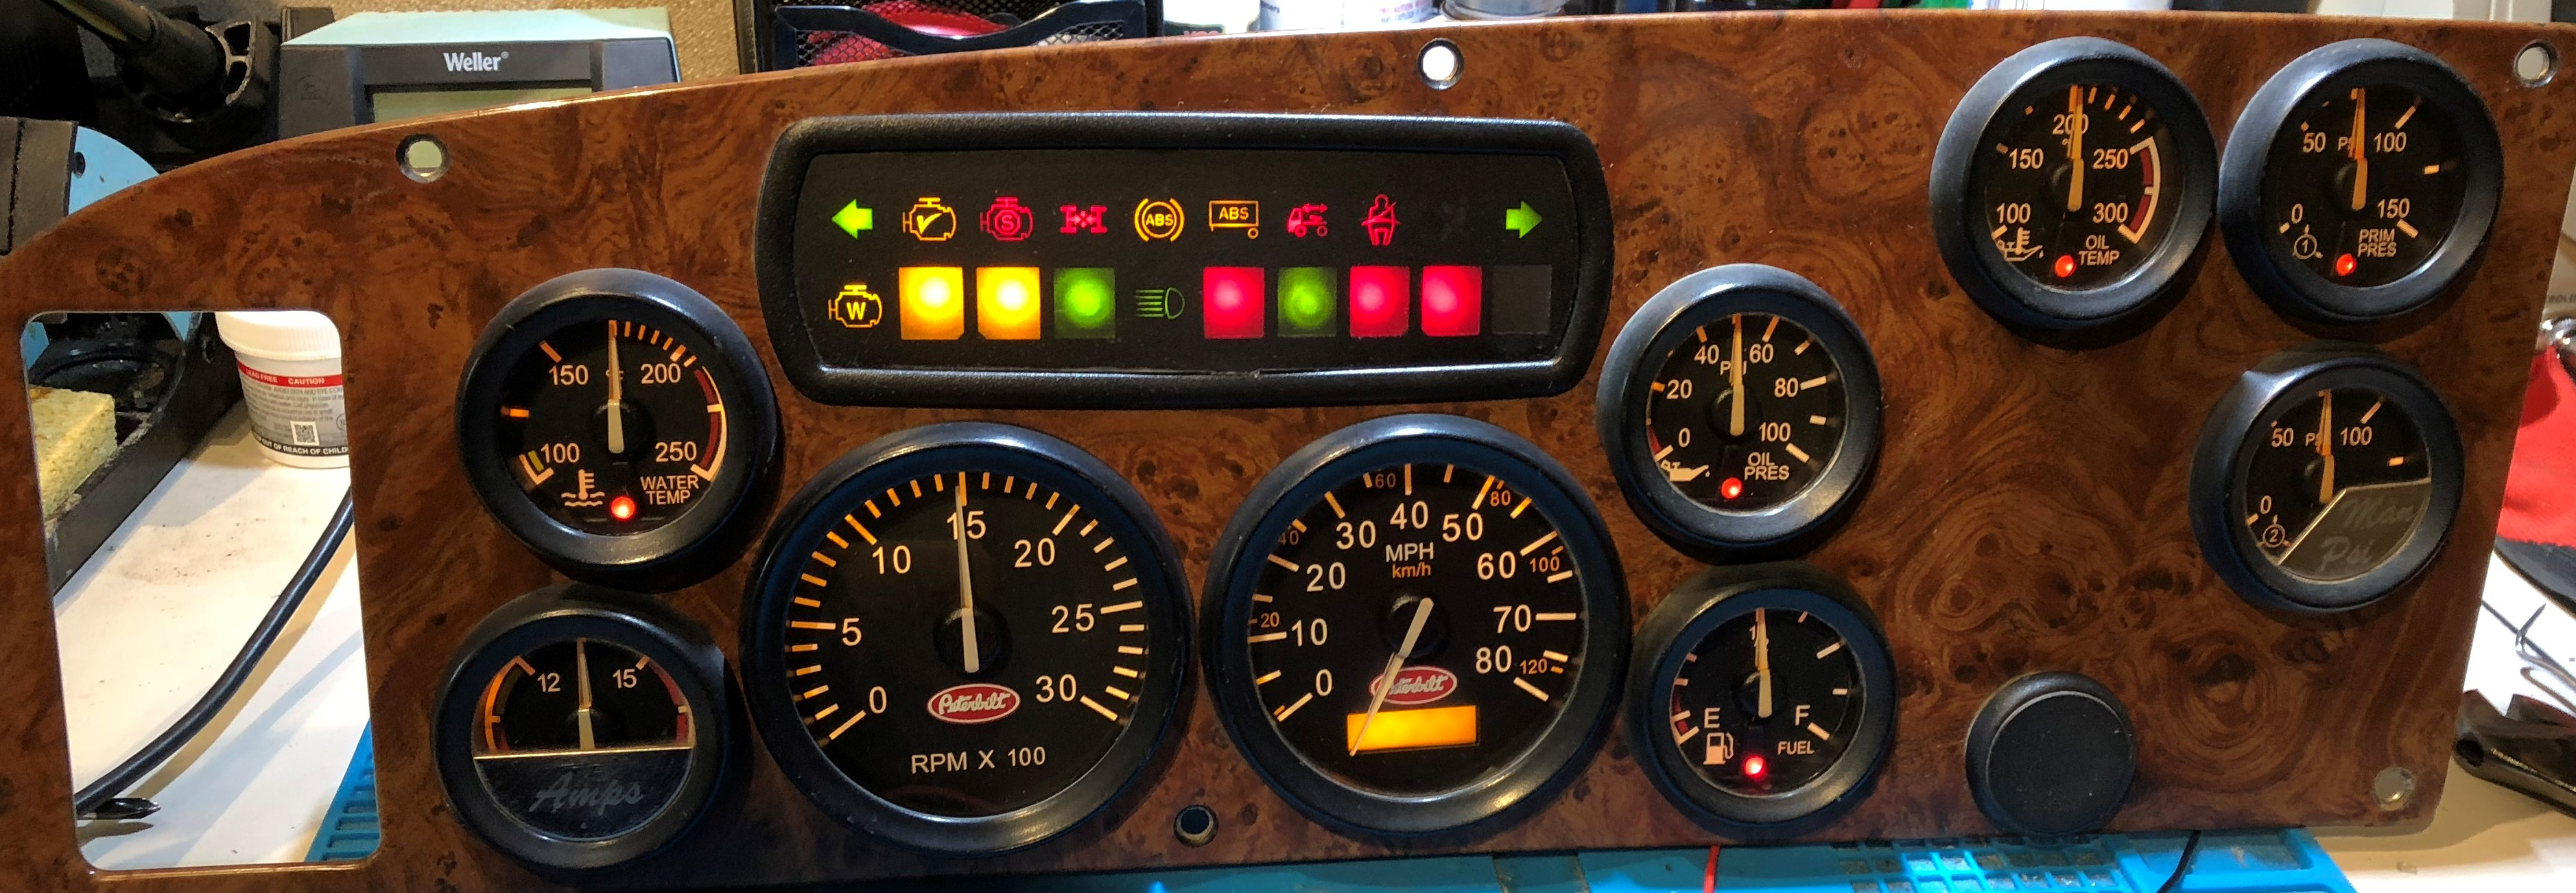 2000 PETERBILT 387 USED DASHBOARD INSTRUMENT CLUSTER FOR SALE (MPH)